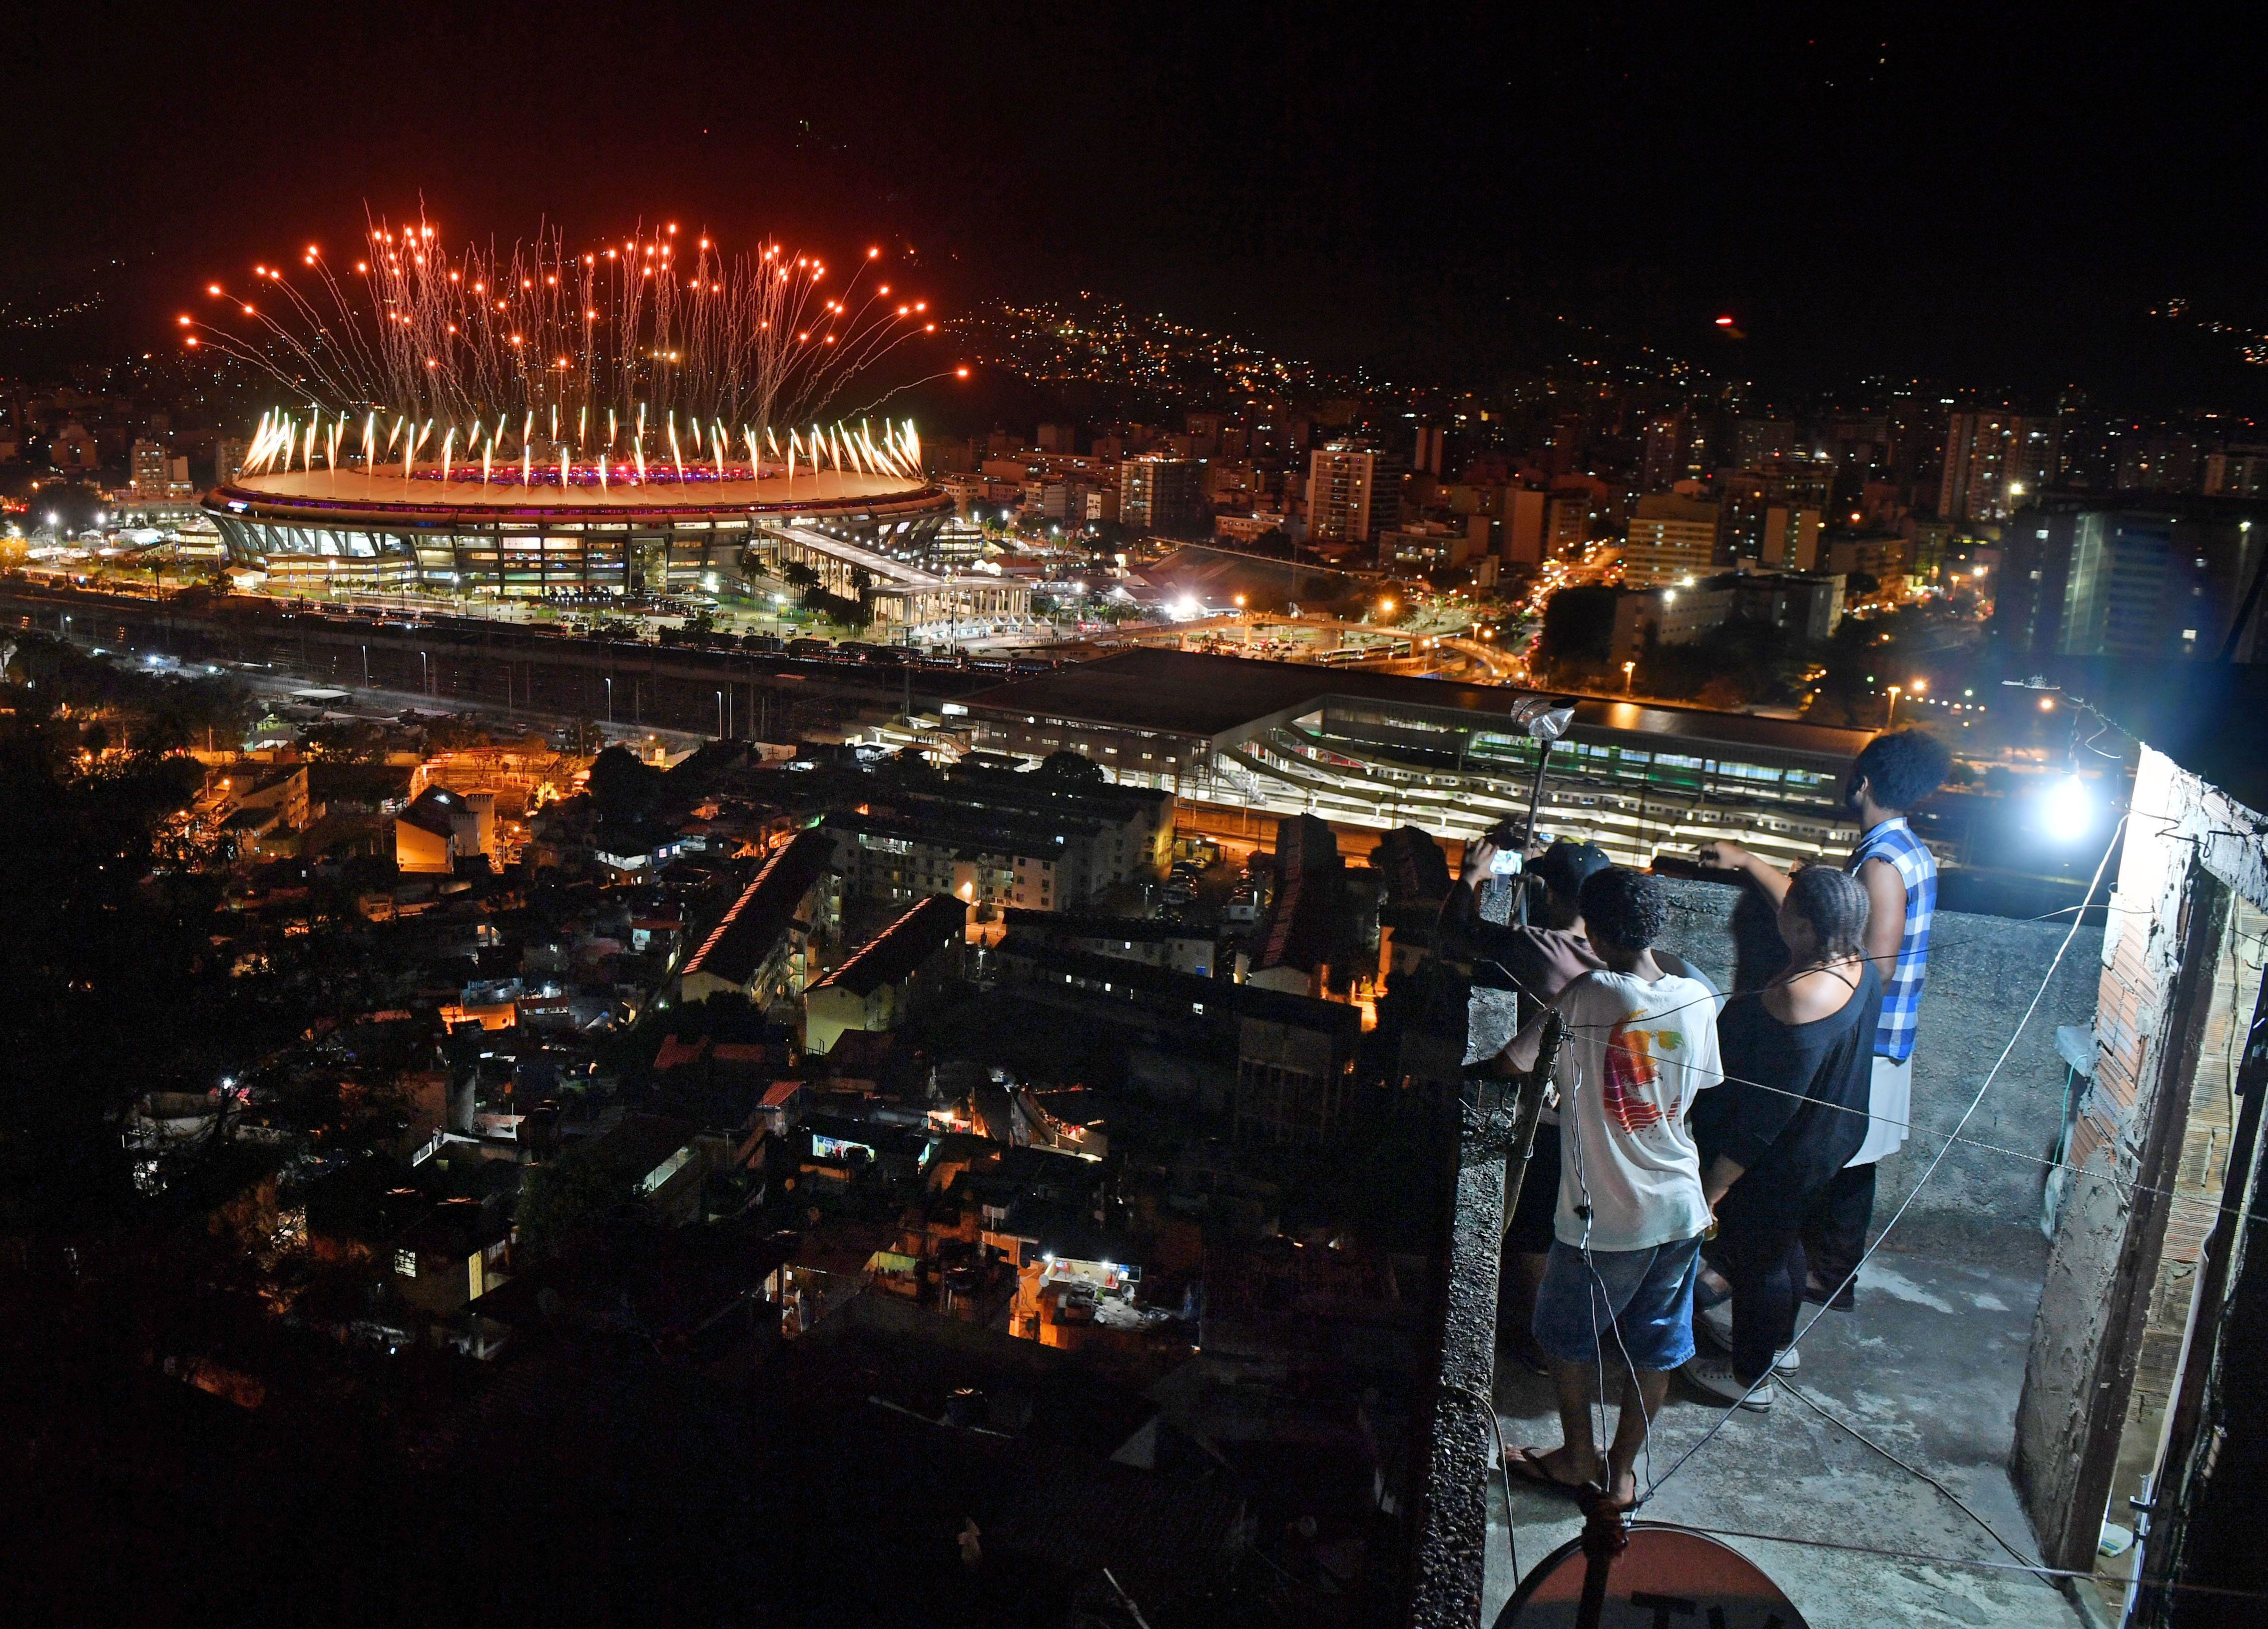 People watch fireworks exploding over the Maracana stadium from a terrace in the favela Mangueira during the opening ceremony